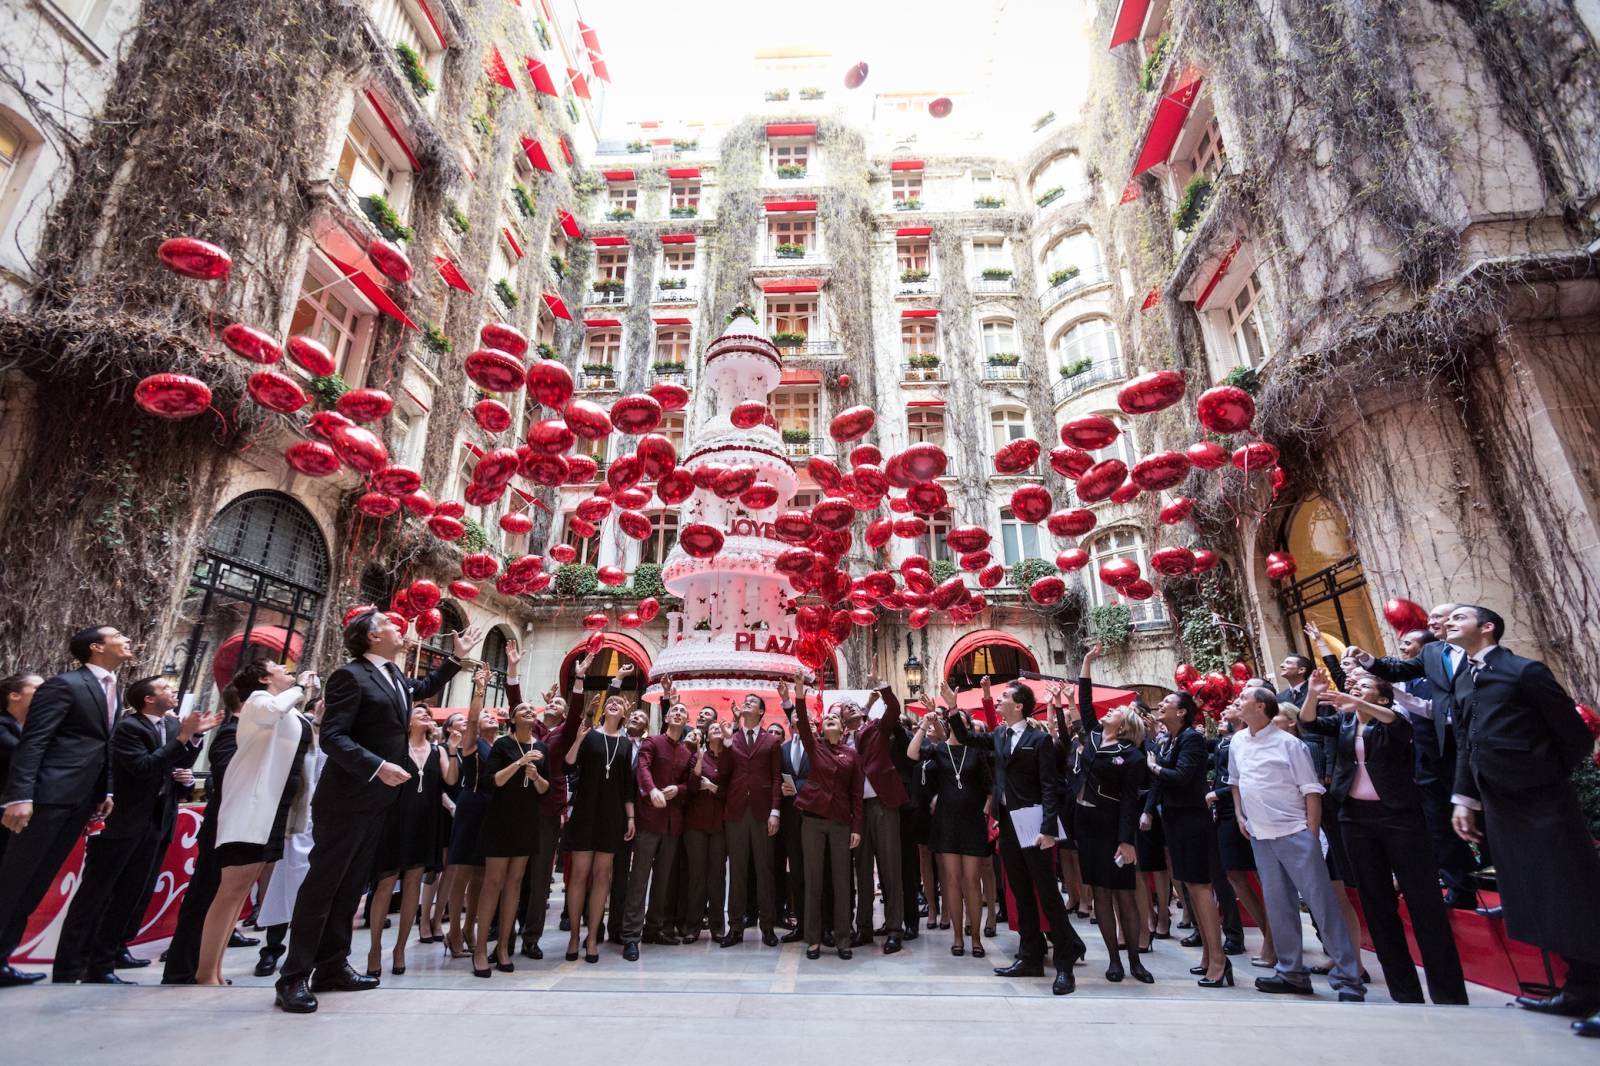 Hotel plaza athenee 100th anniversary and renovation - Renovation plaza athenee ...